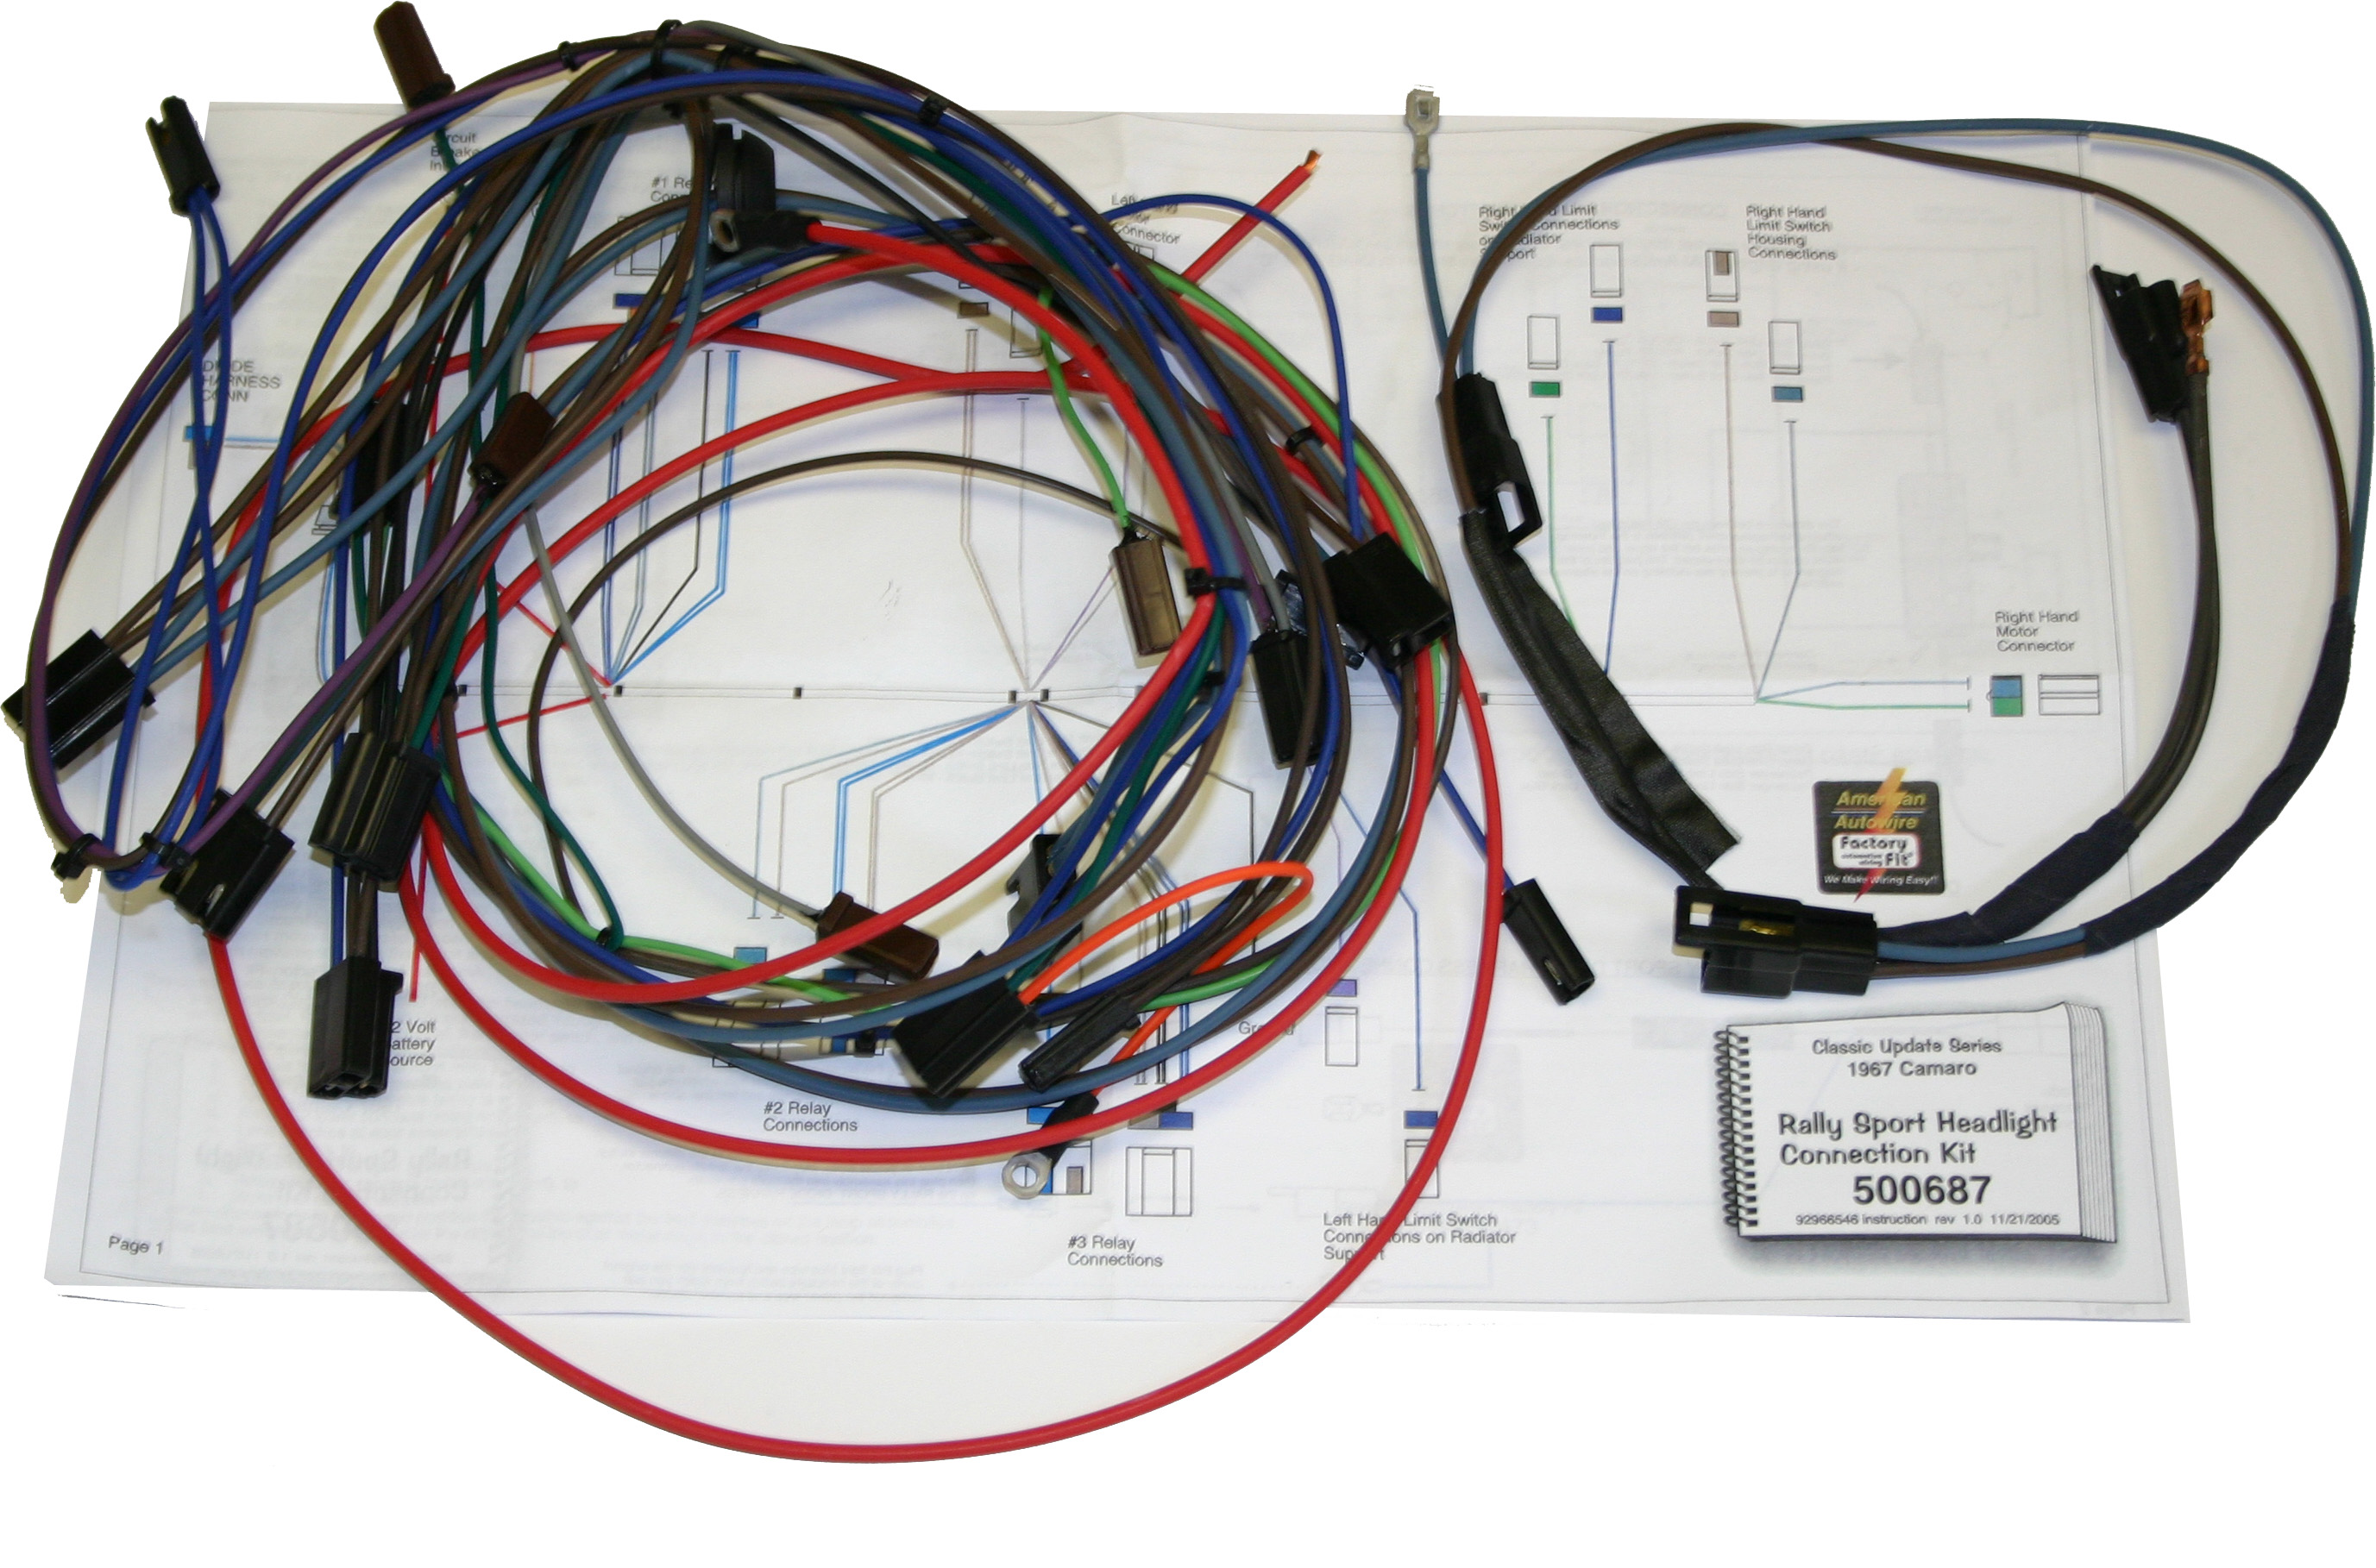 500773 67 68 camaro firebird classic update wiring harness 500661 1968 camaro complete wiring harness at nearapp.co